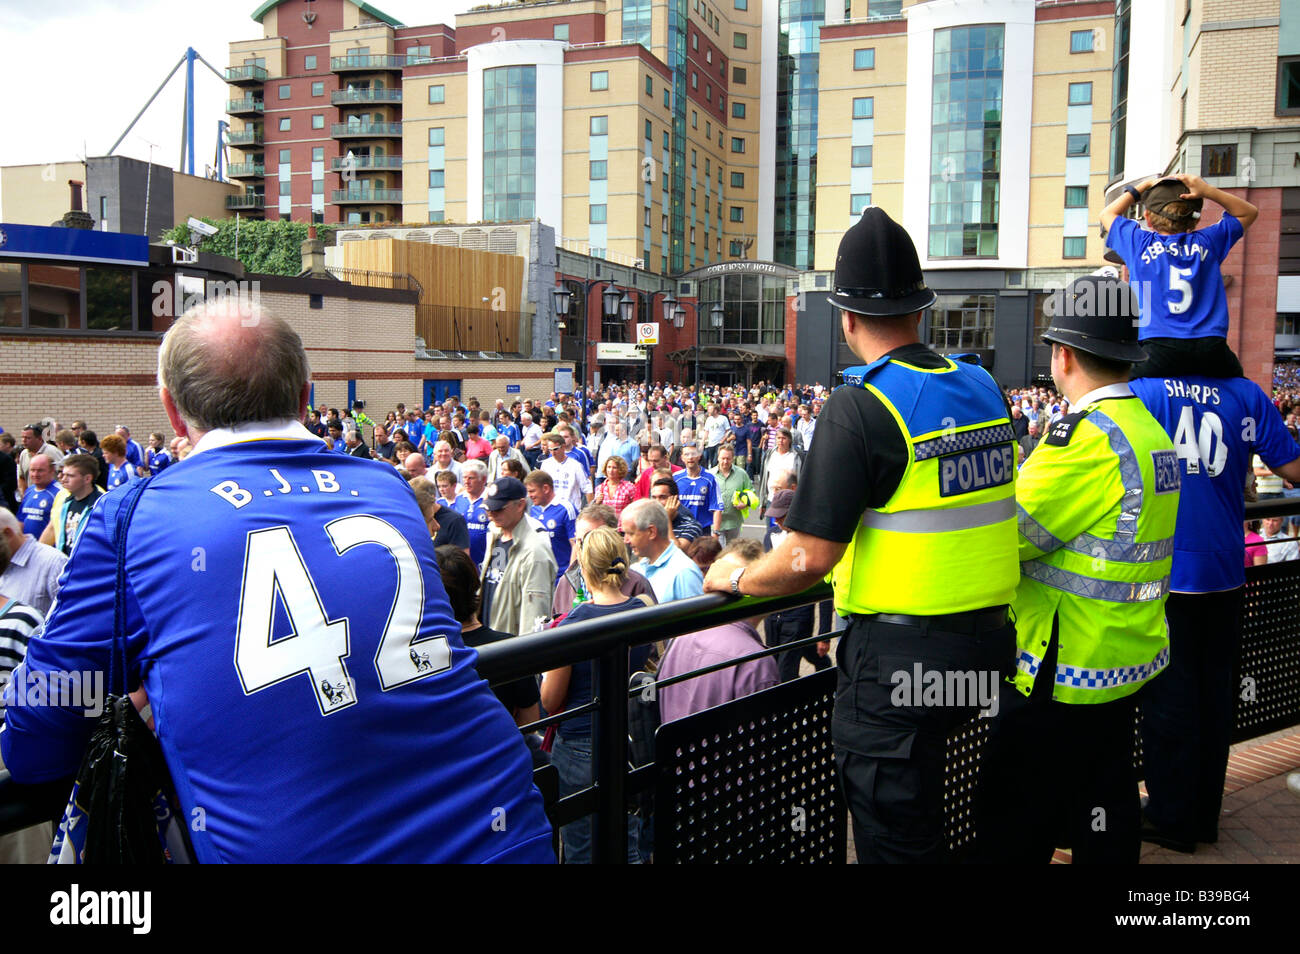 Chelsea fans after game on the Stamford Bridge, London - Stock Image